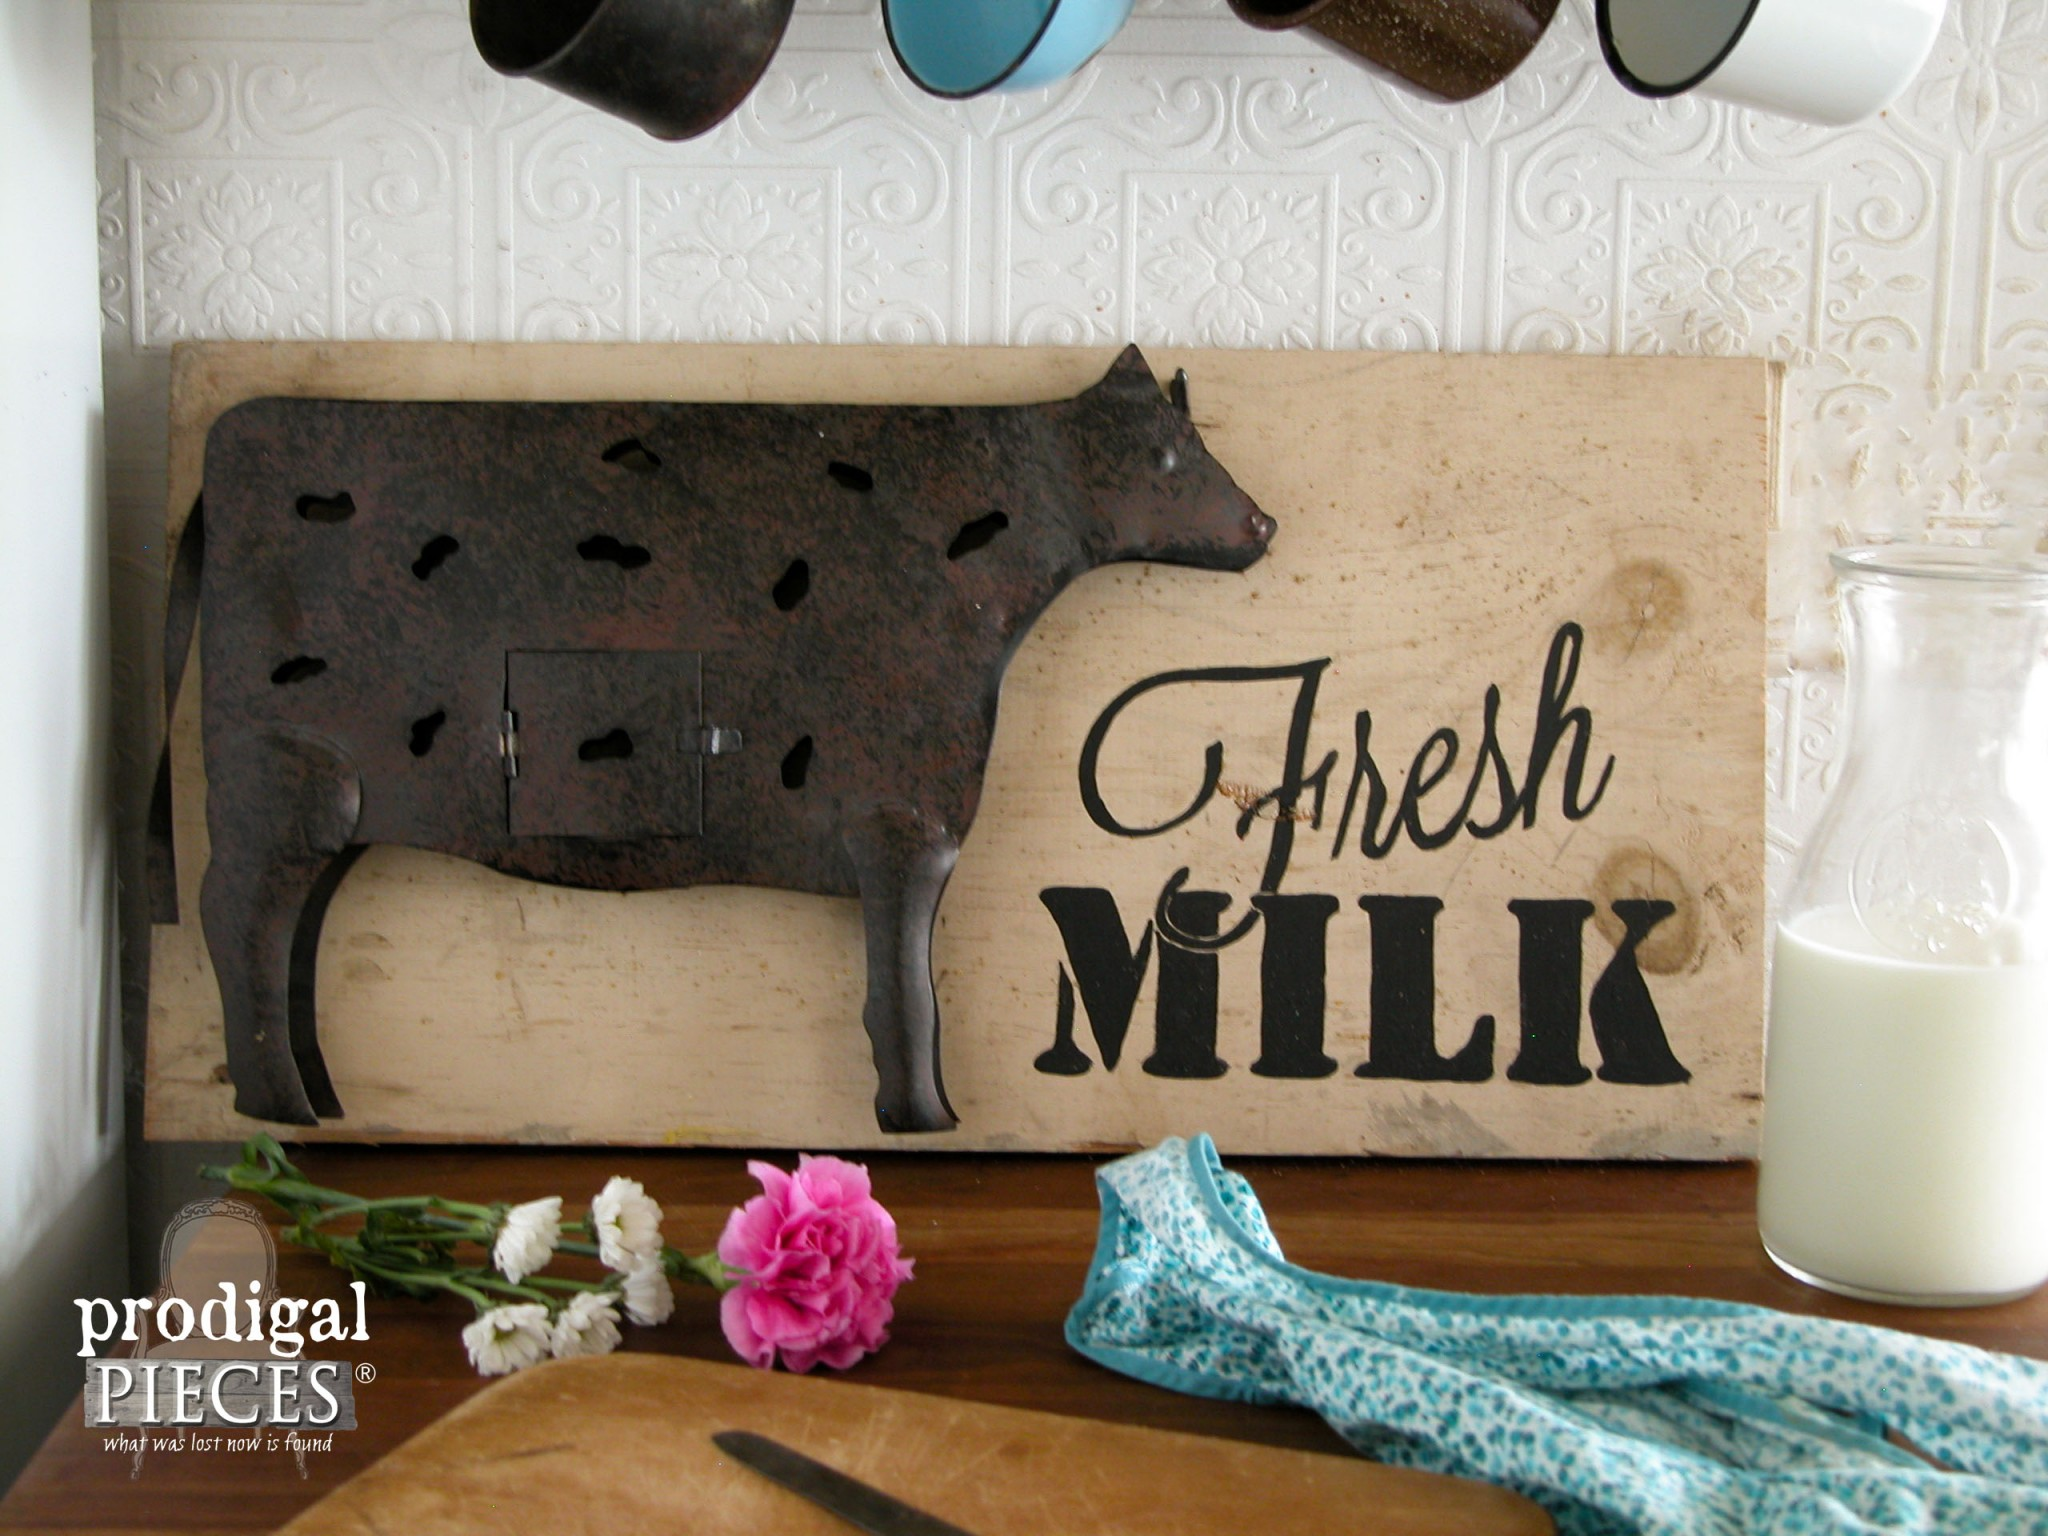 Rustic Farmhouse Fresh Milk Sign from Reclaimed Finds by Prodigal Pieces | www.prodigalpieces.com